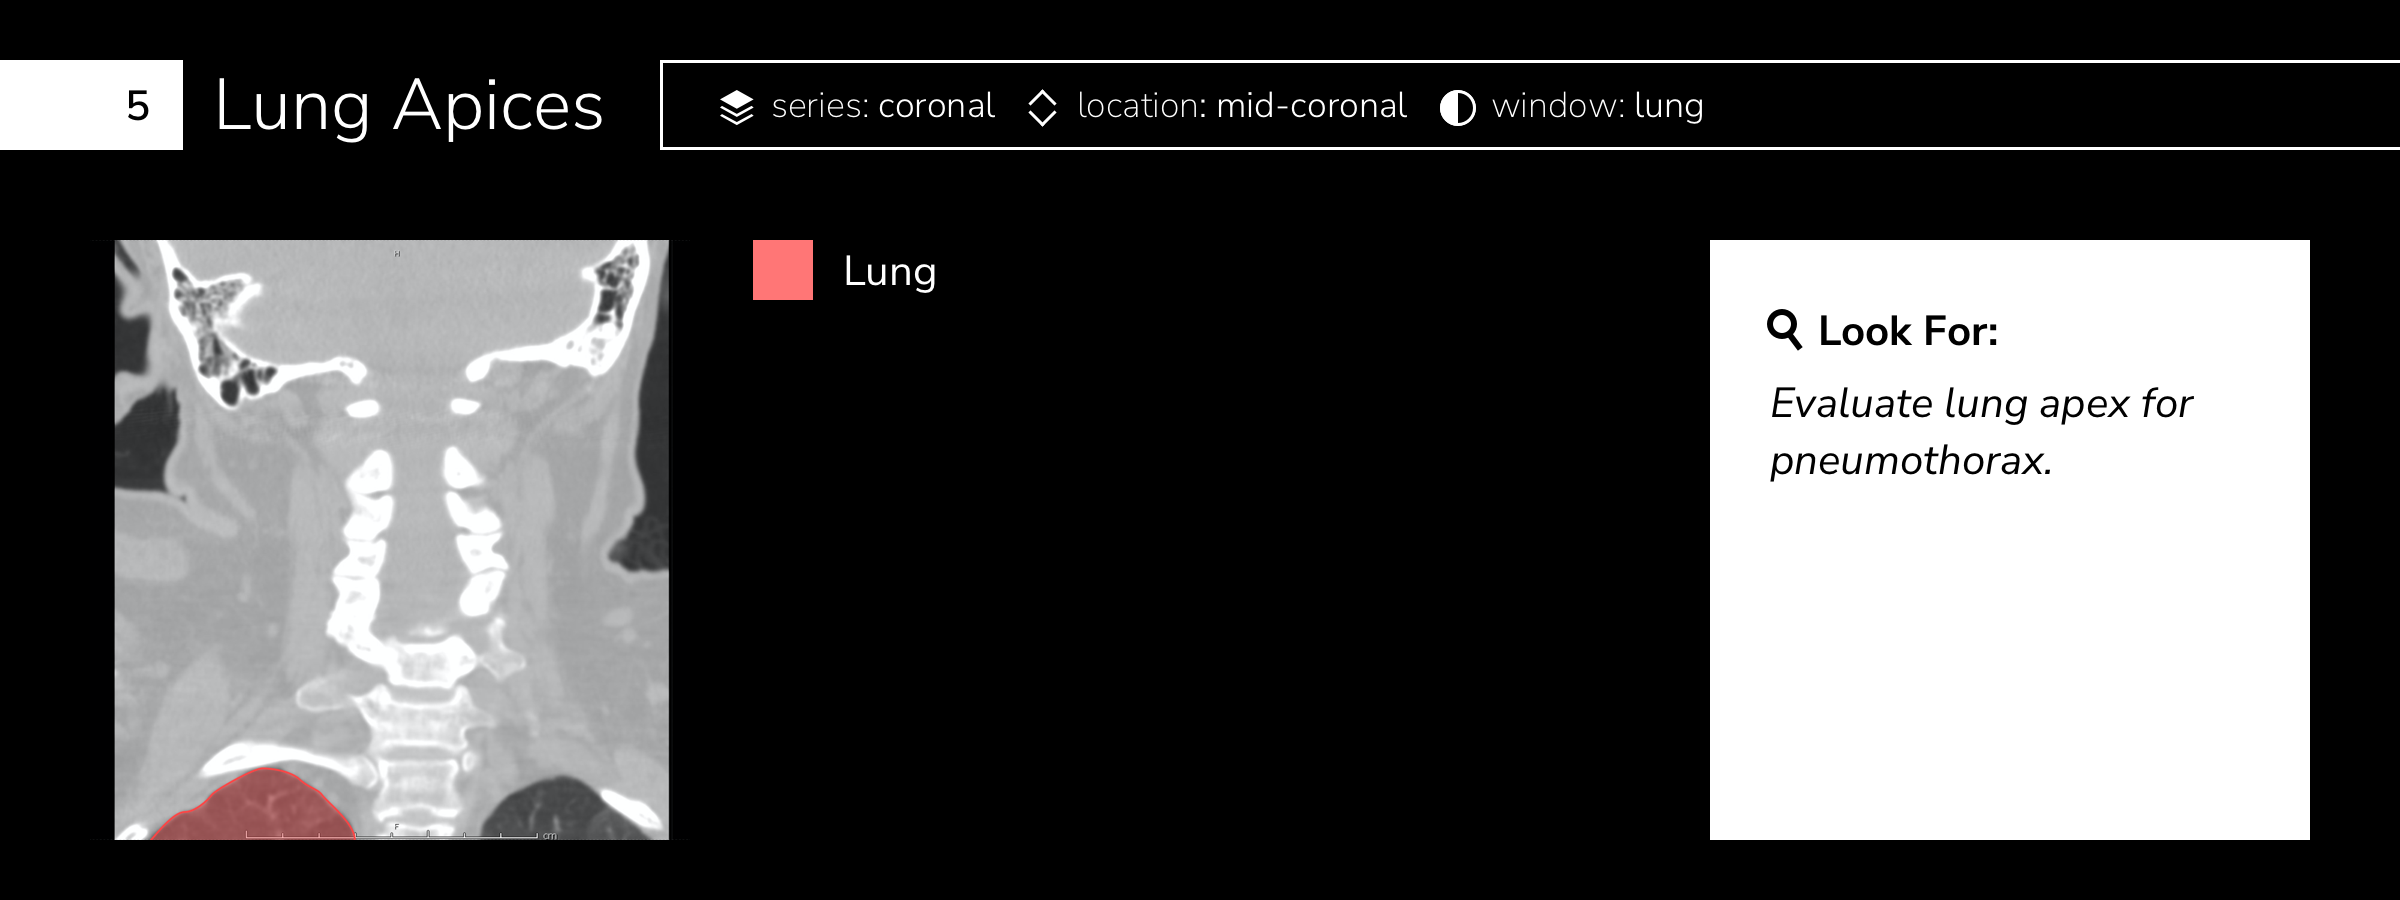 Lung Apices